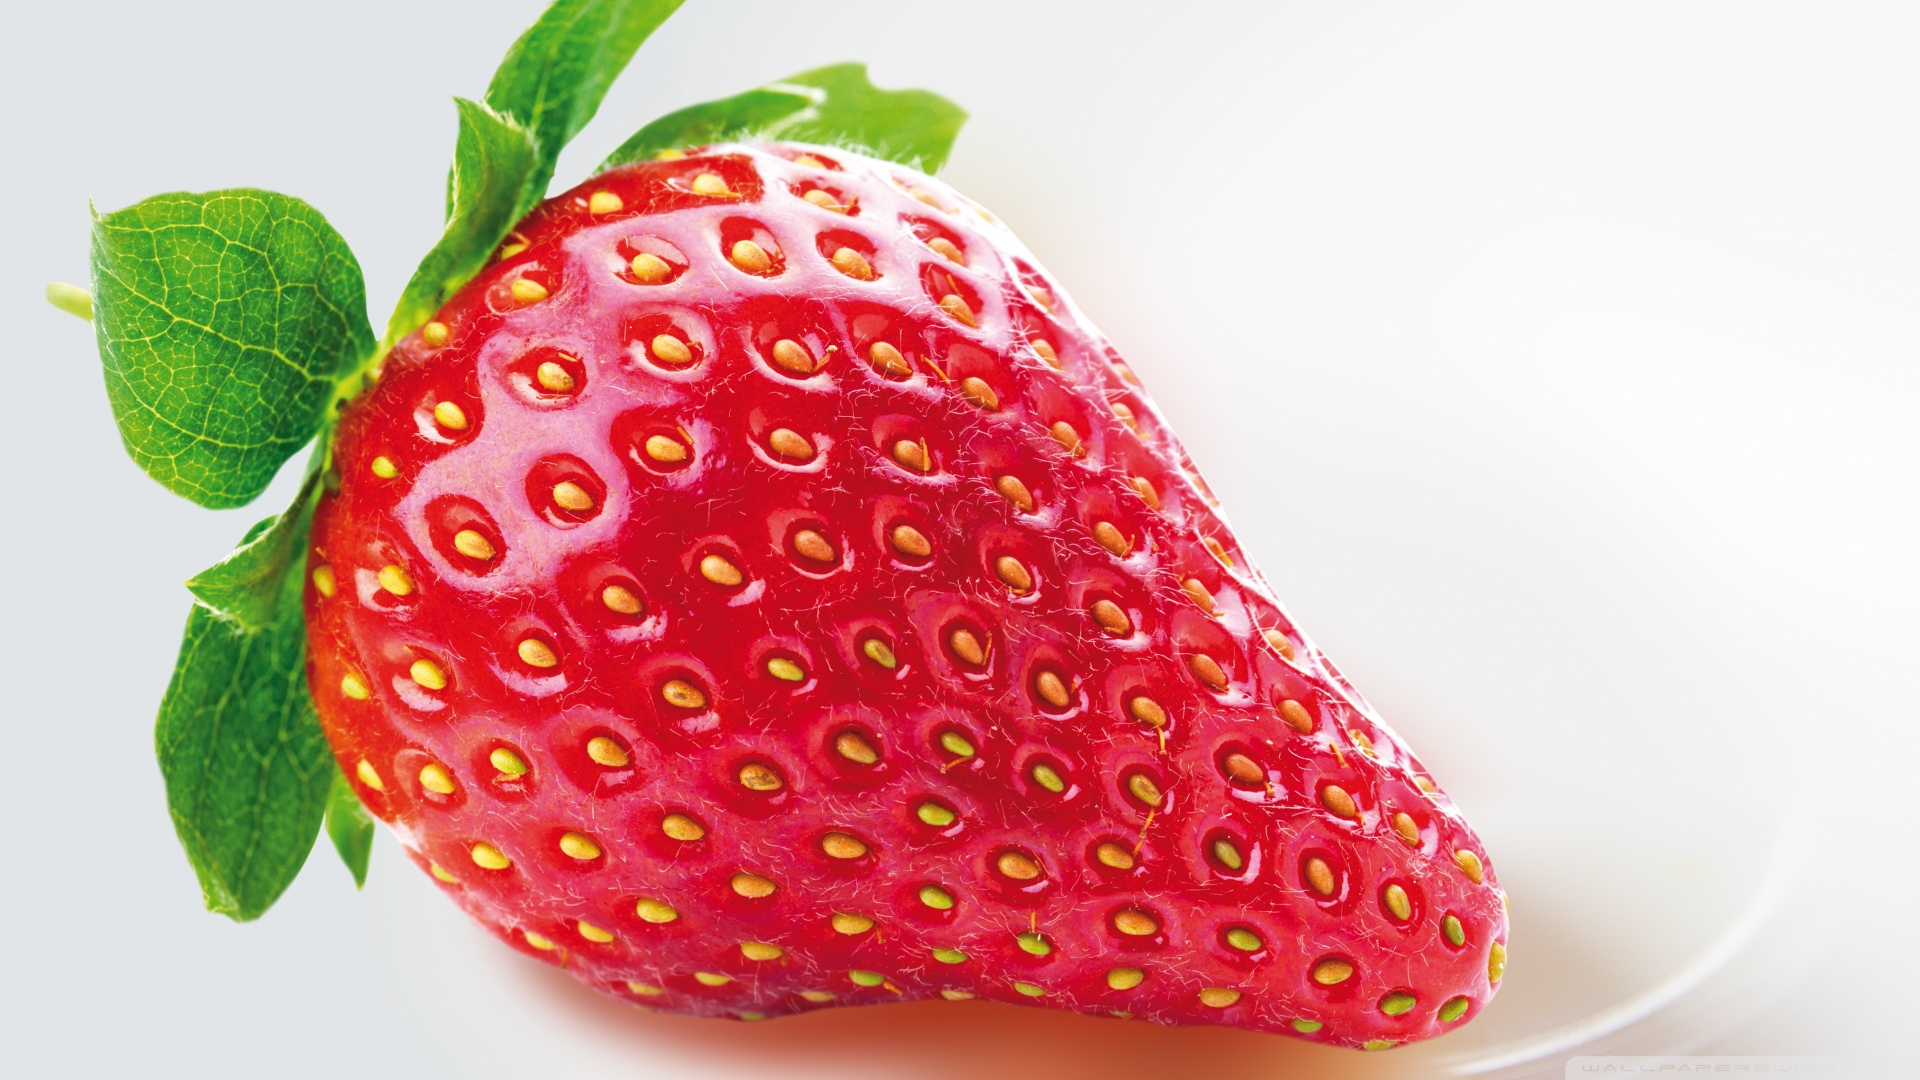 strawberry wallpaper hd